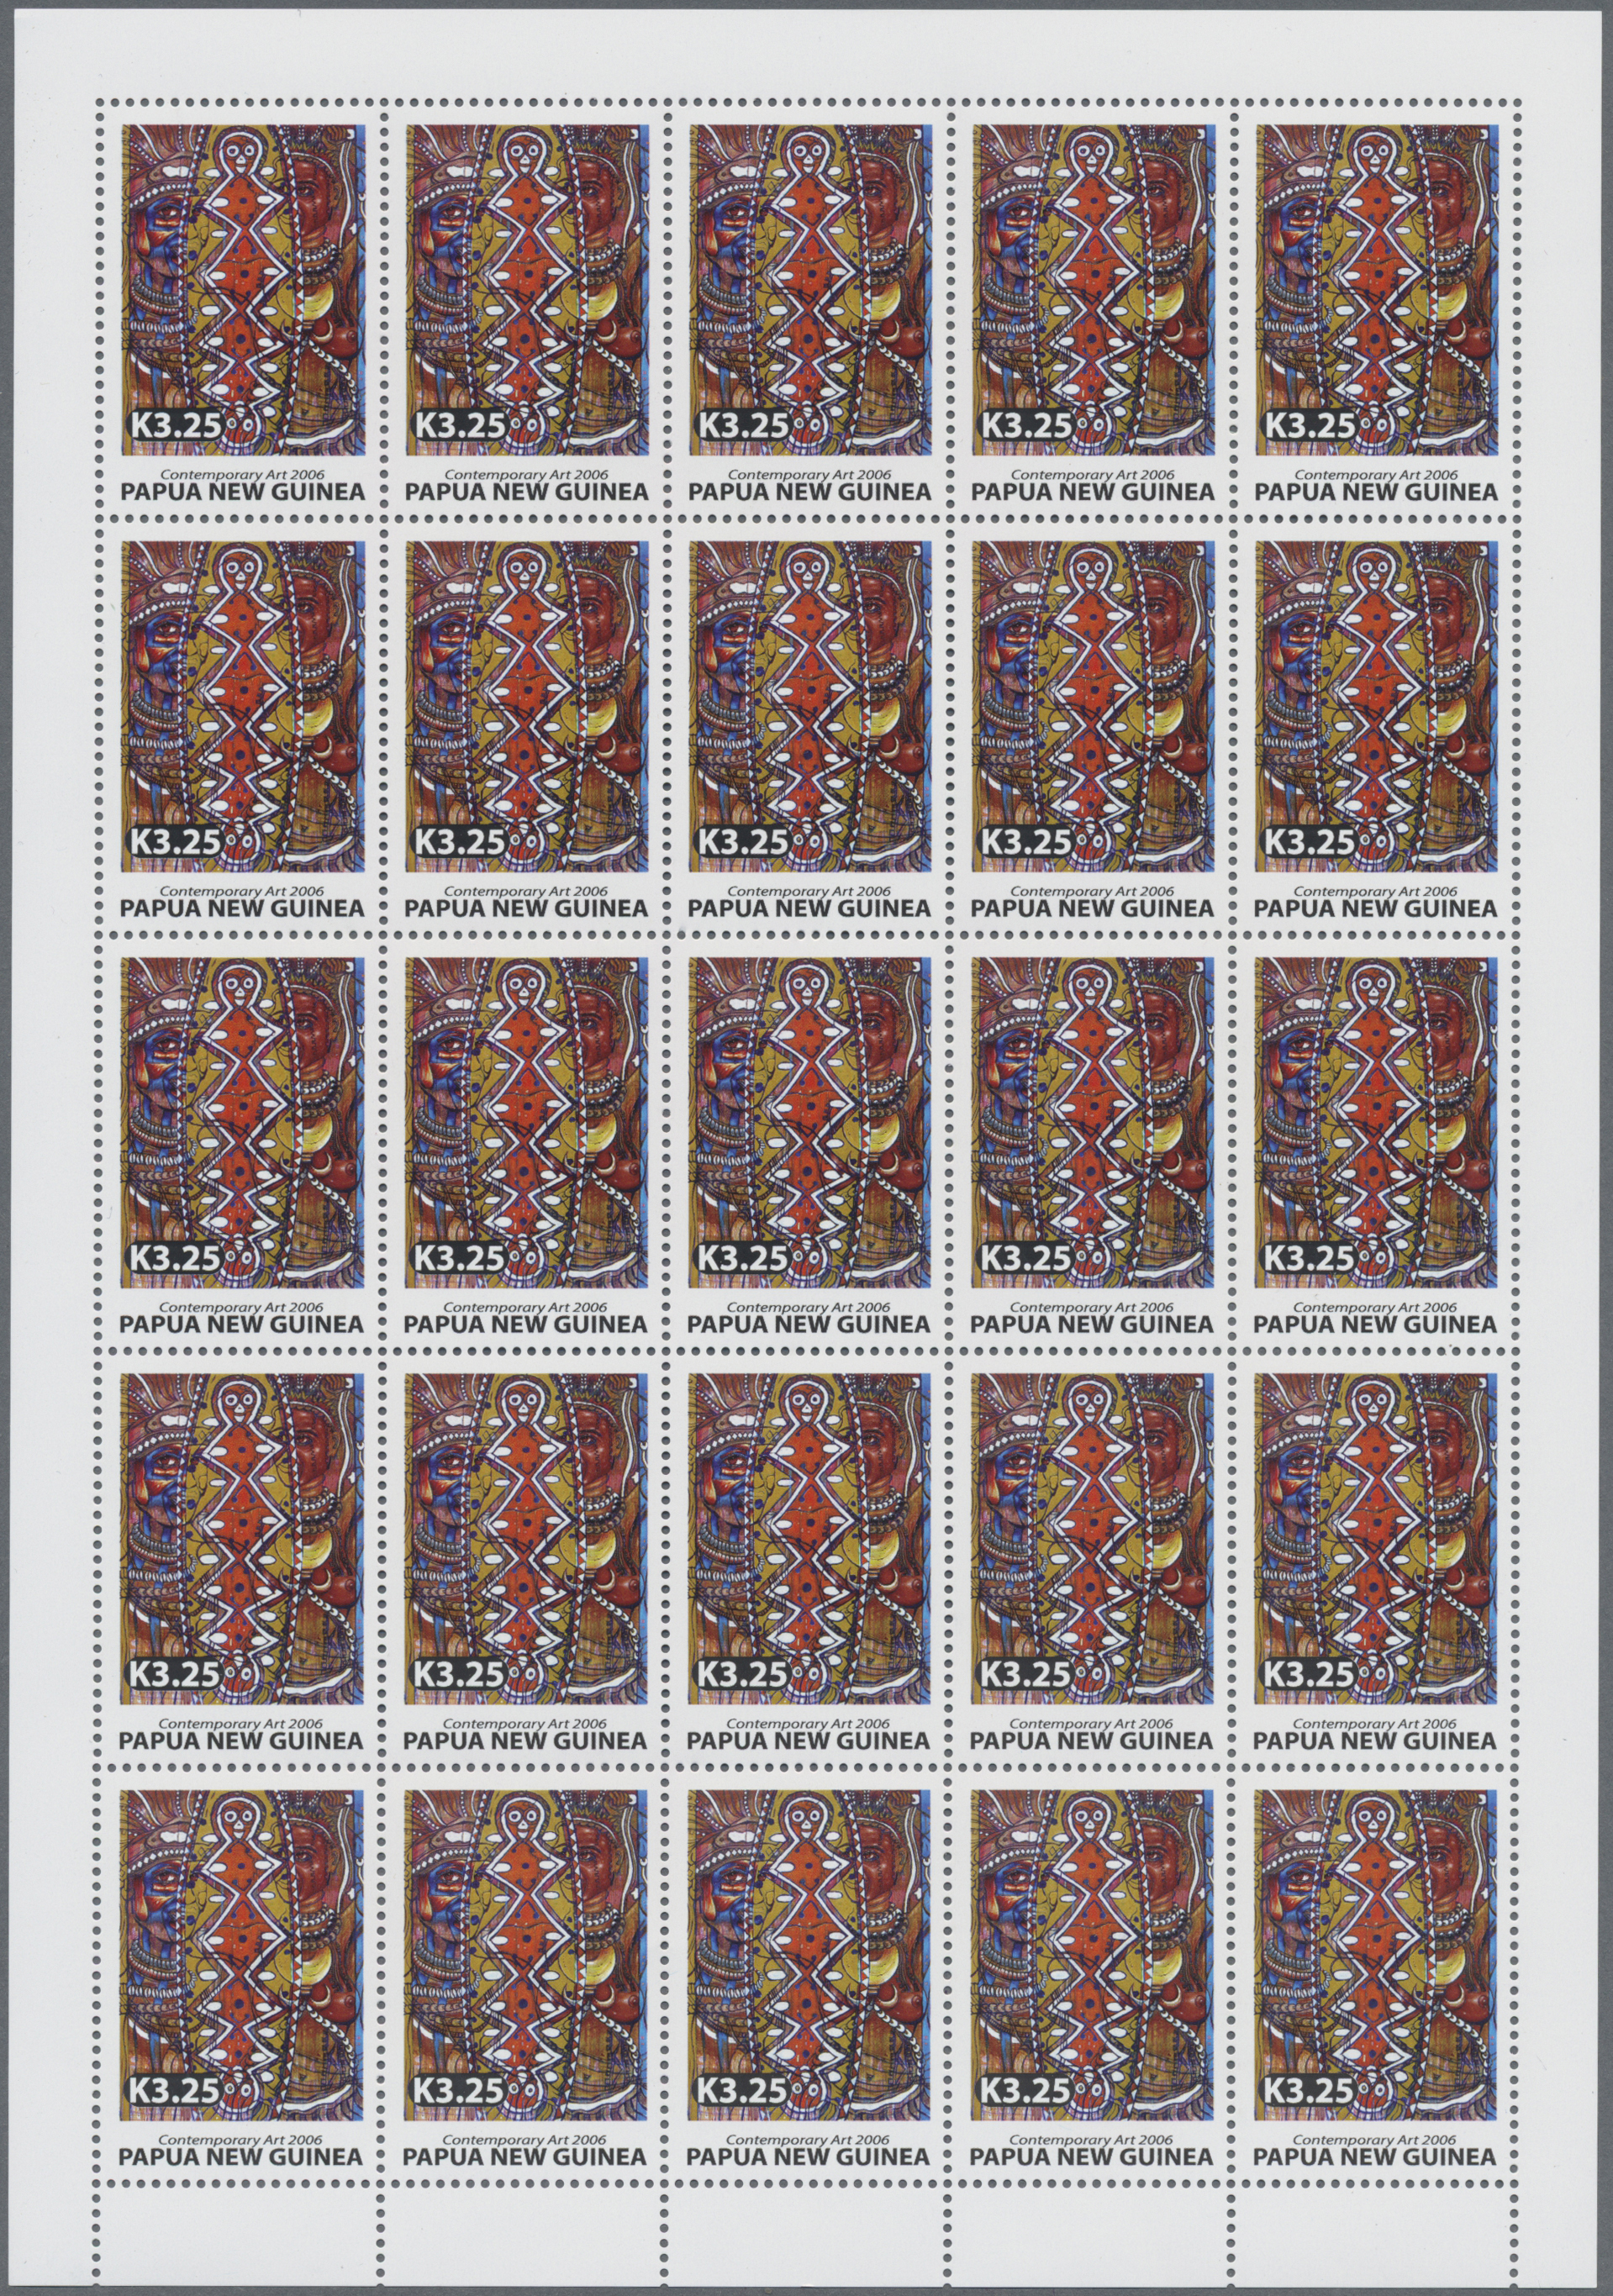 Lot 29617 - papua neuguinea  -  Auktionshaus Christoph Gärtner GmbH & Co. KG Sale #44 Collections Overseas, Europe